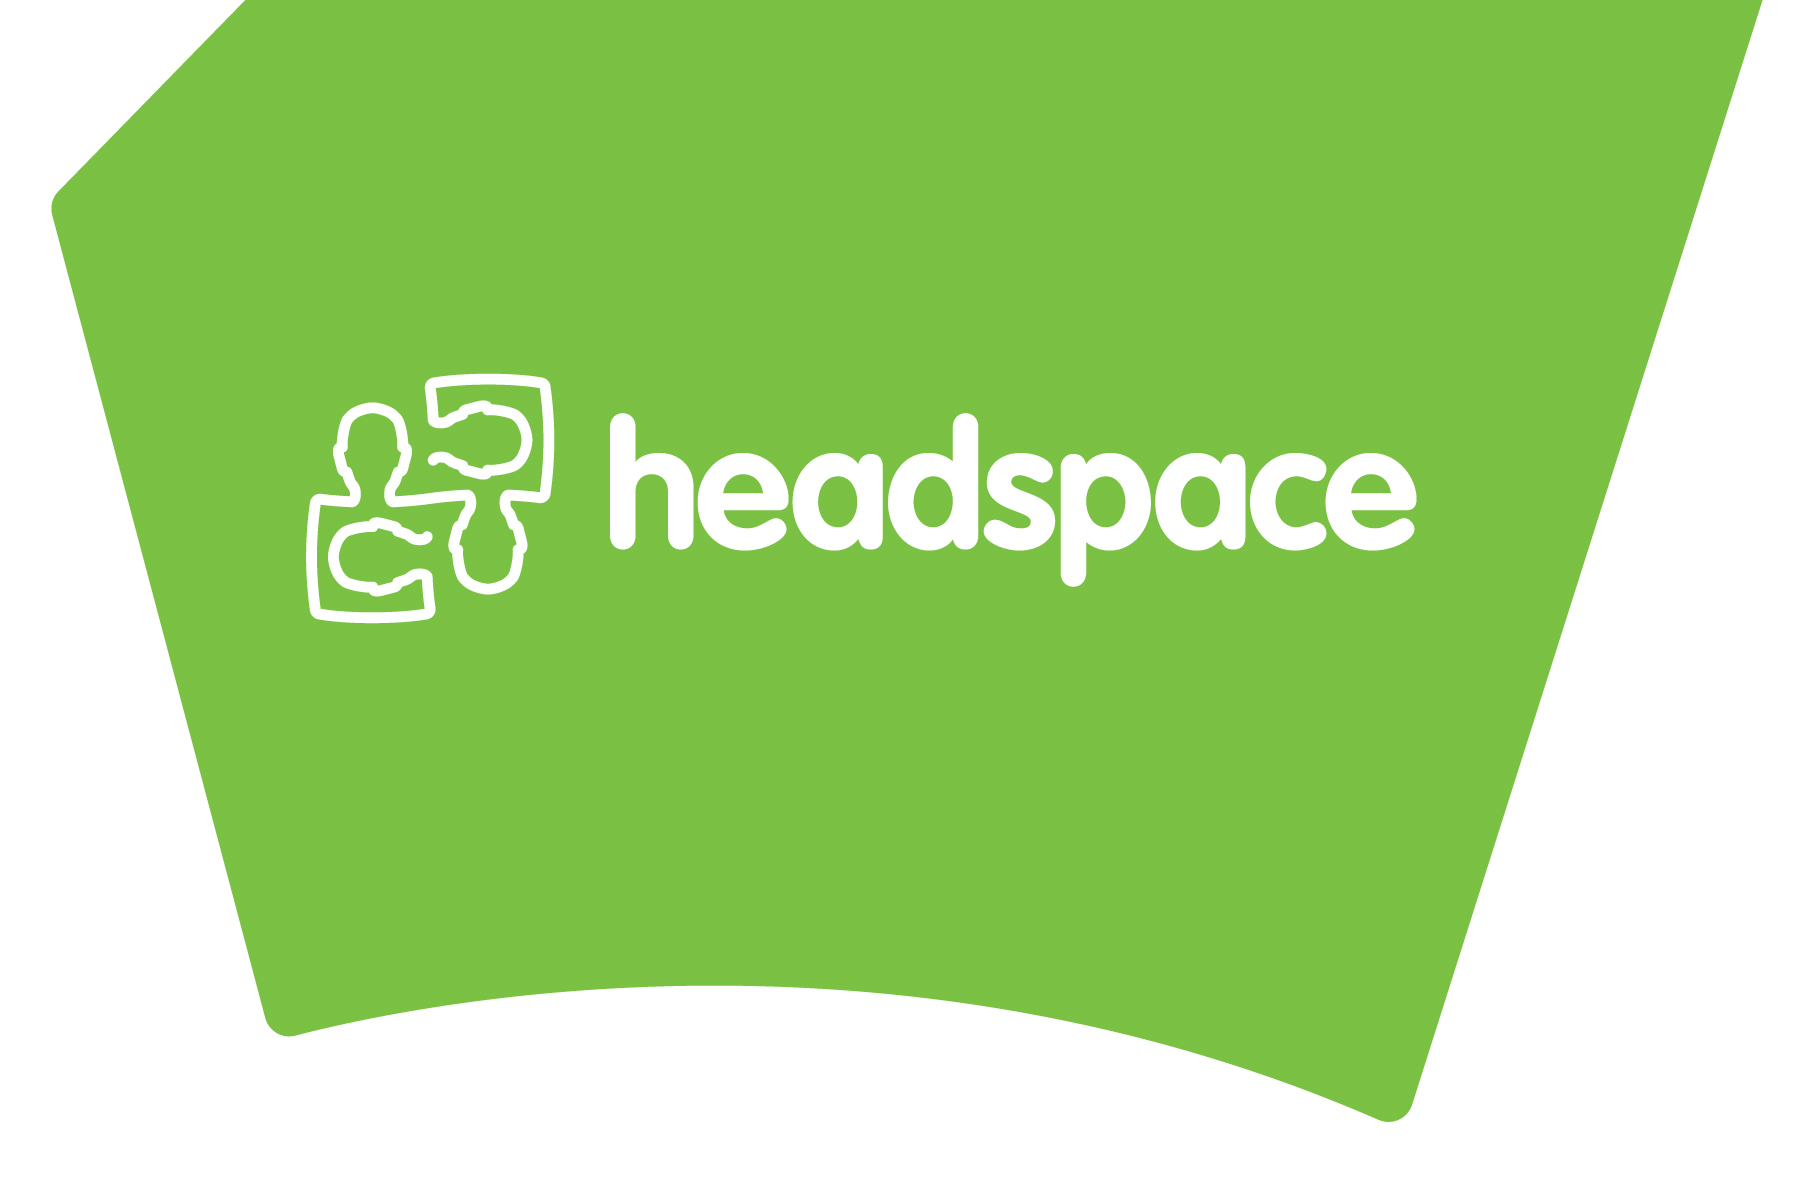 headspace National Youth Mental Health Foundation